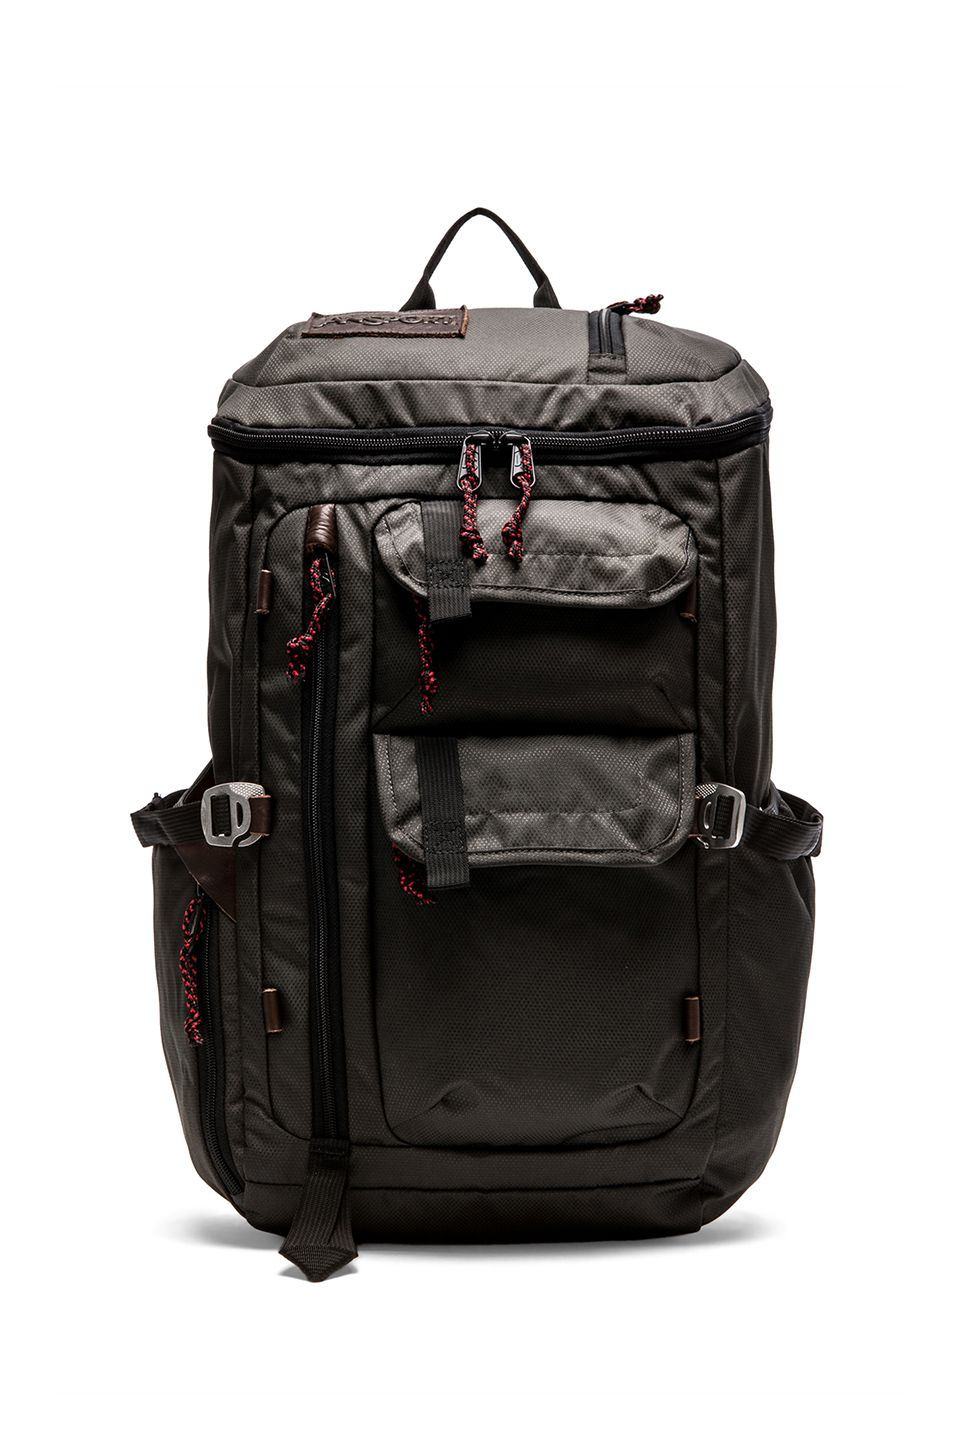 WATCHTOWER BACKPACK JANSPORT $90.00 Poly dobby exterior with nylon ...